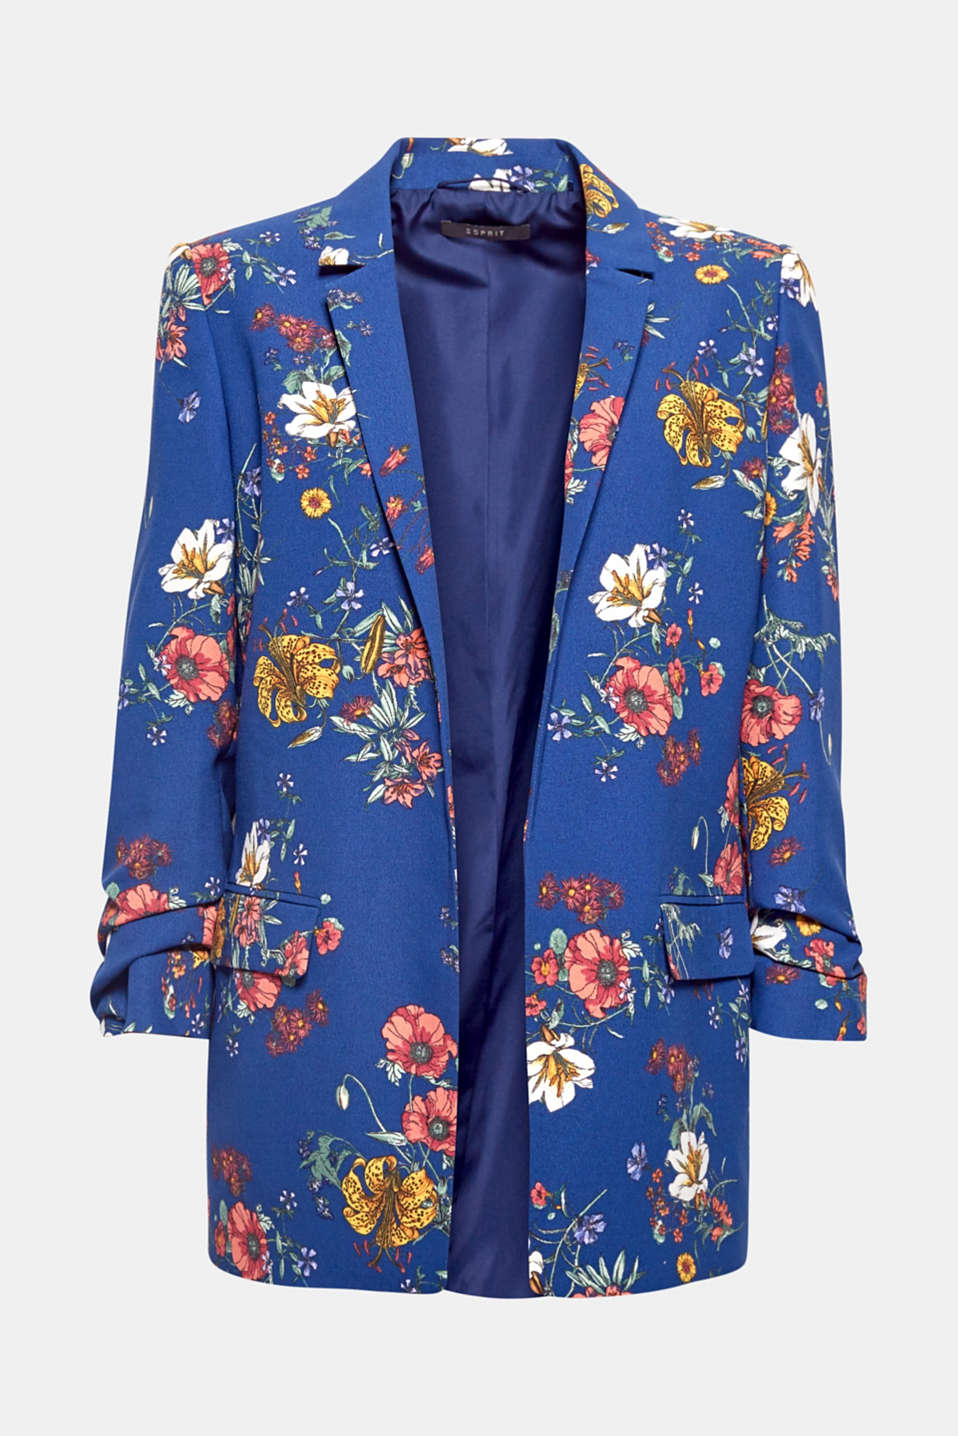 The colourful floral print, gathered sleeves and loose cut make this blazer genuine breaking news - with all the trappings of a firm fave!